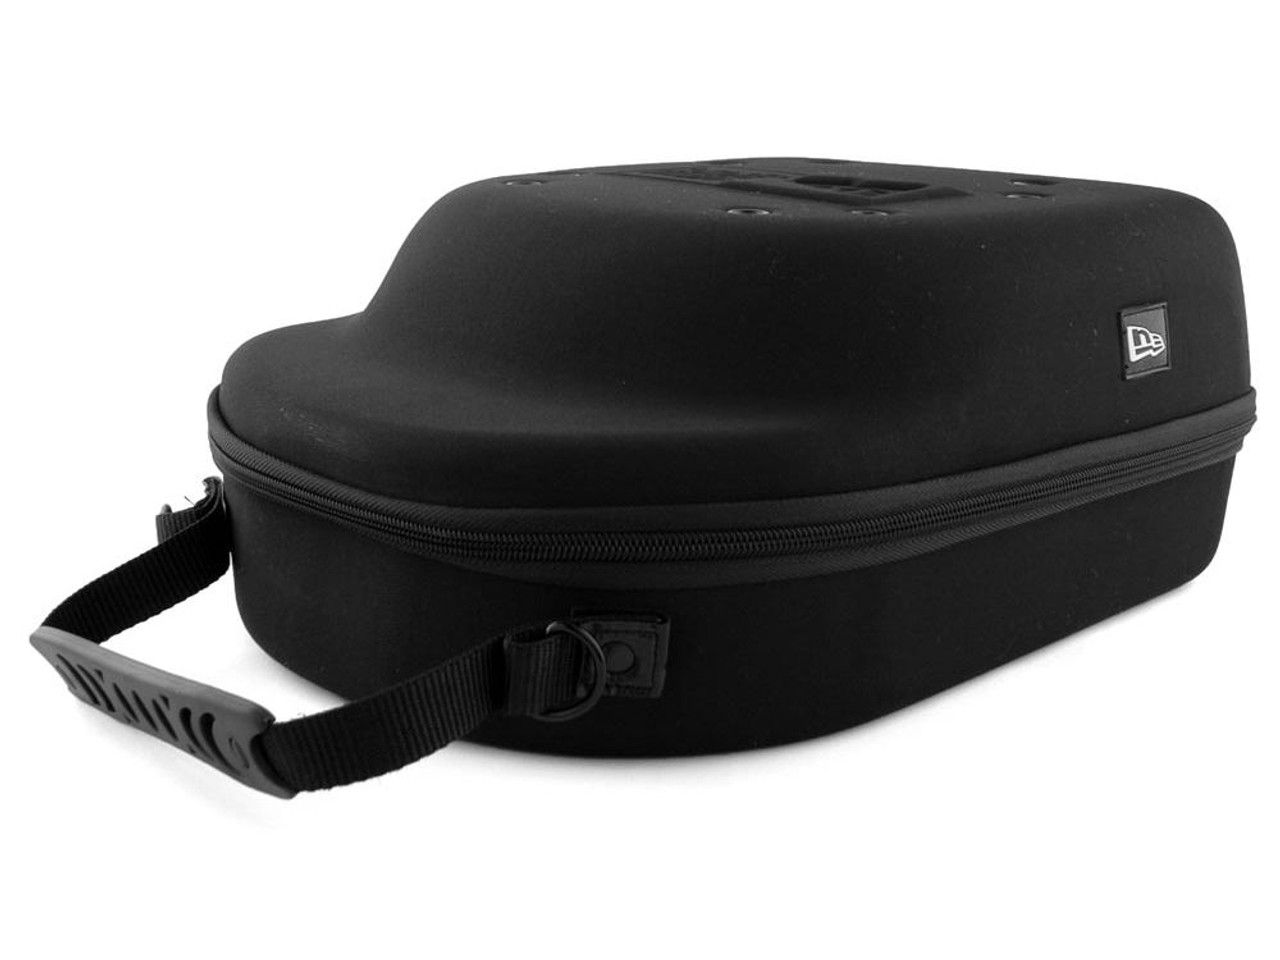 New Era 6 Cap Carrier - FITS up to 12 CAPS - KCT Streetwear New Zealand 39982439cd18